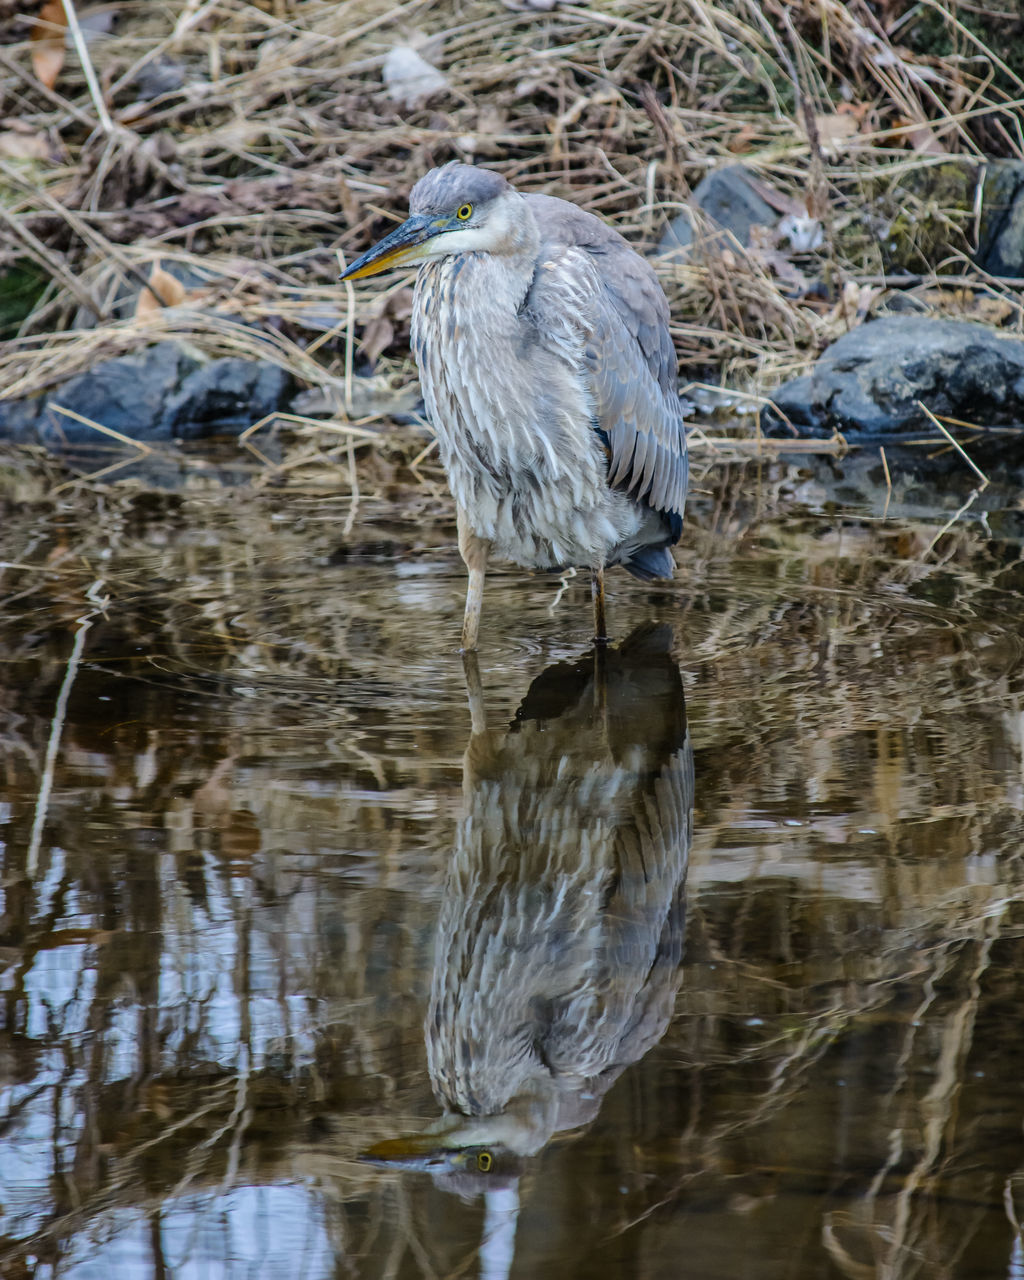 animal themes, bird, animals in the wild, one animal, heron, animal wildlife, waterfront, water, nature, day, reflection, gray heron, no people, outdoors, lake, perching, beauty in nature, close-up